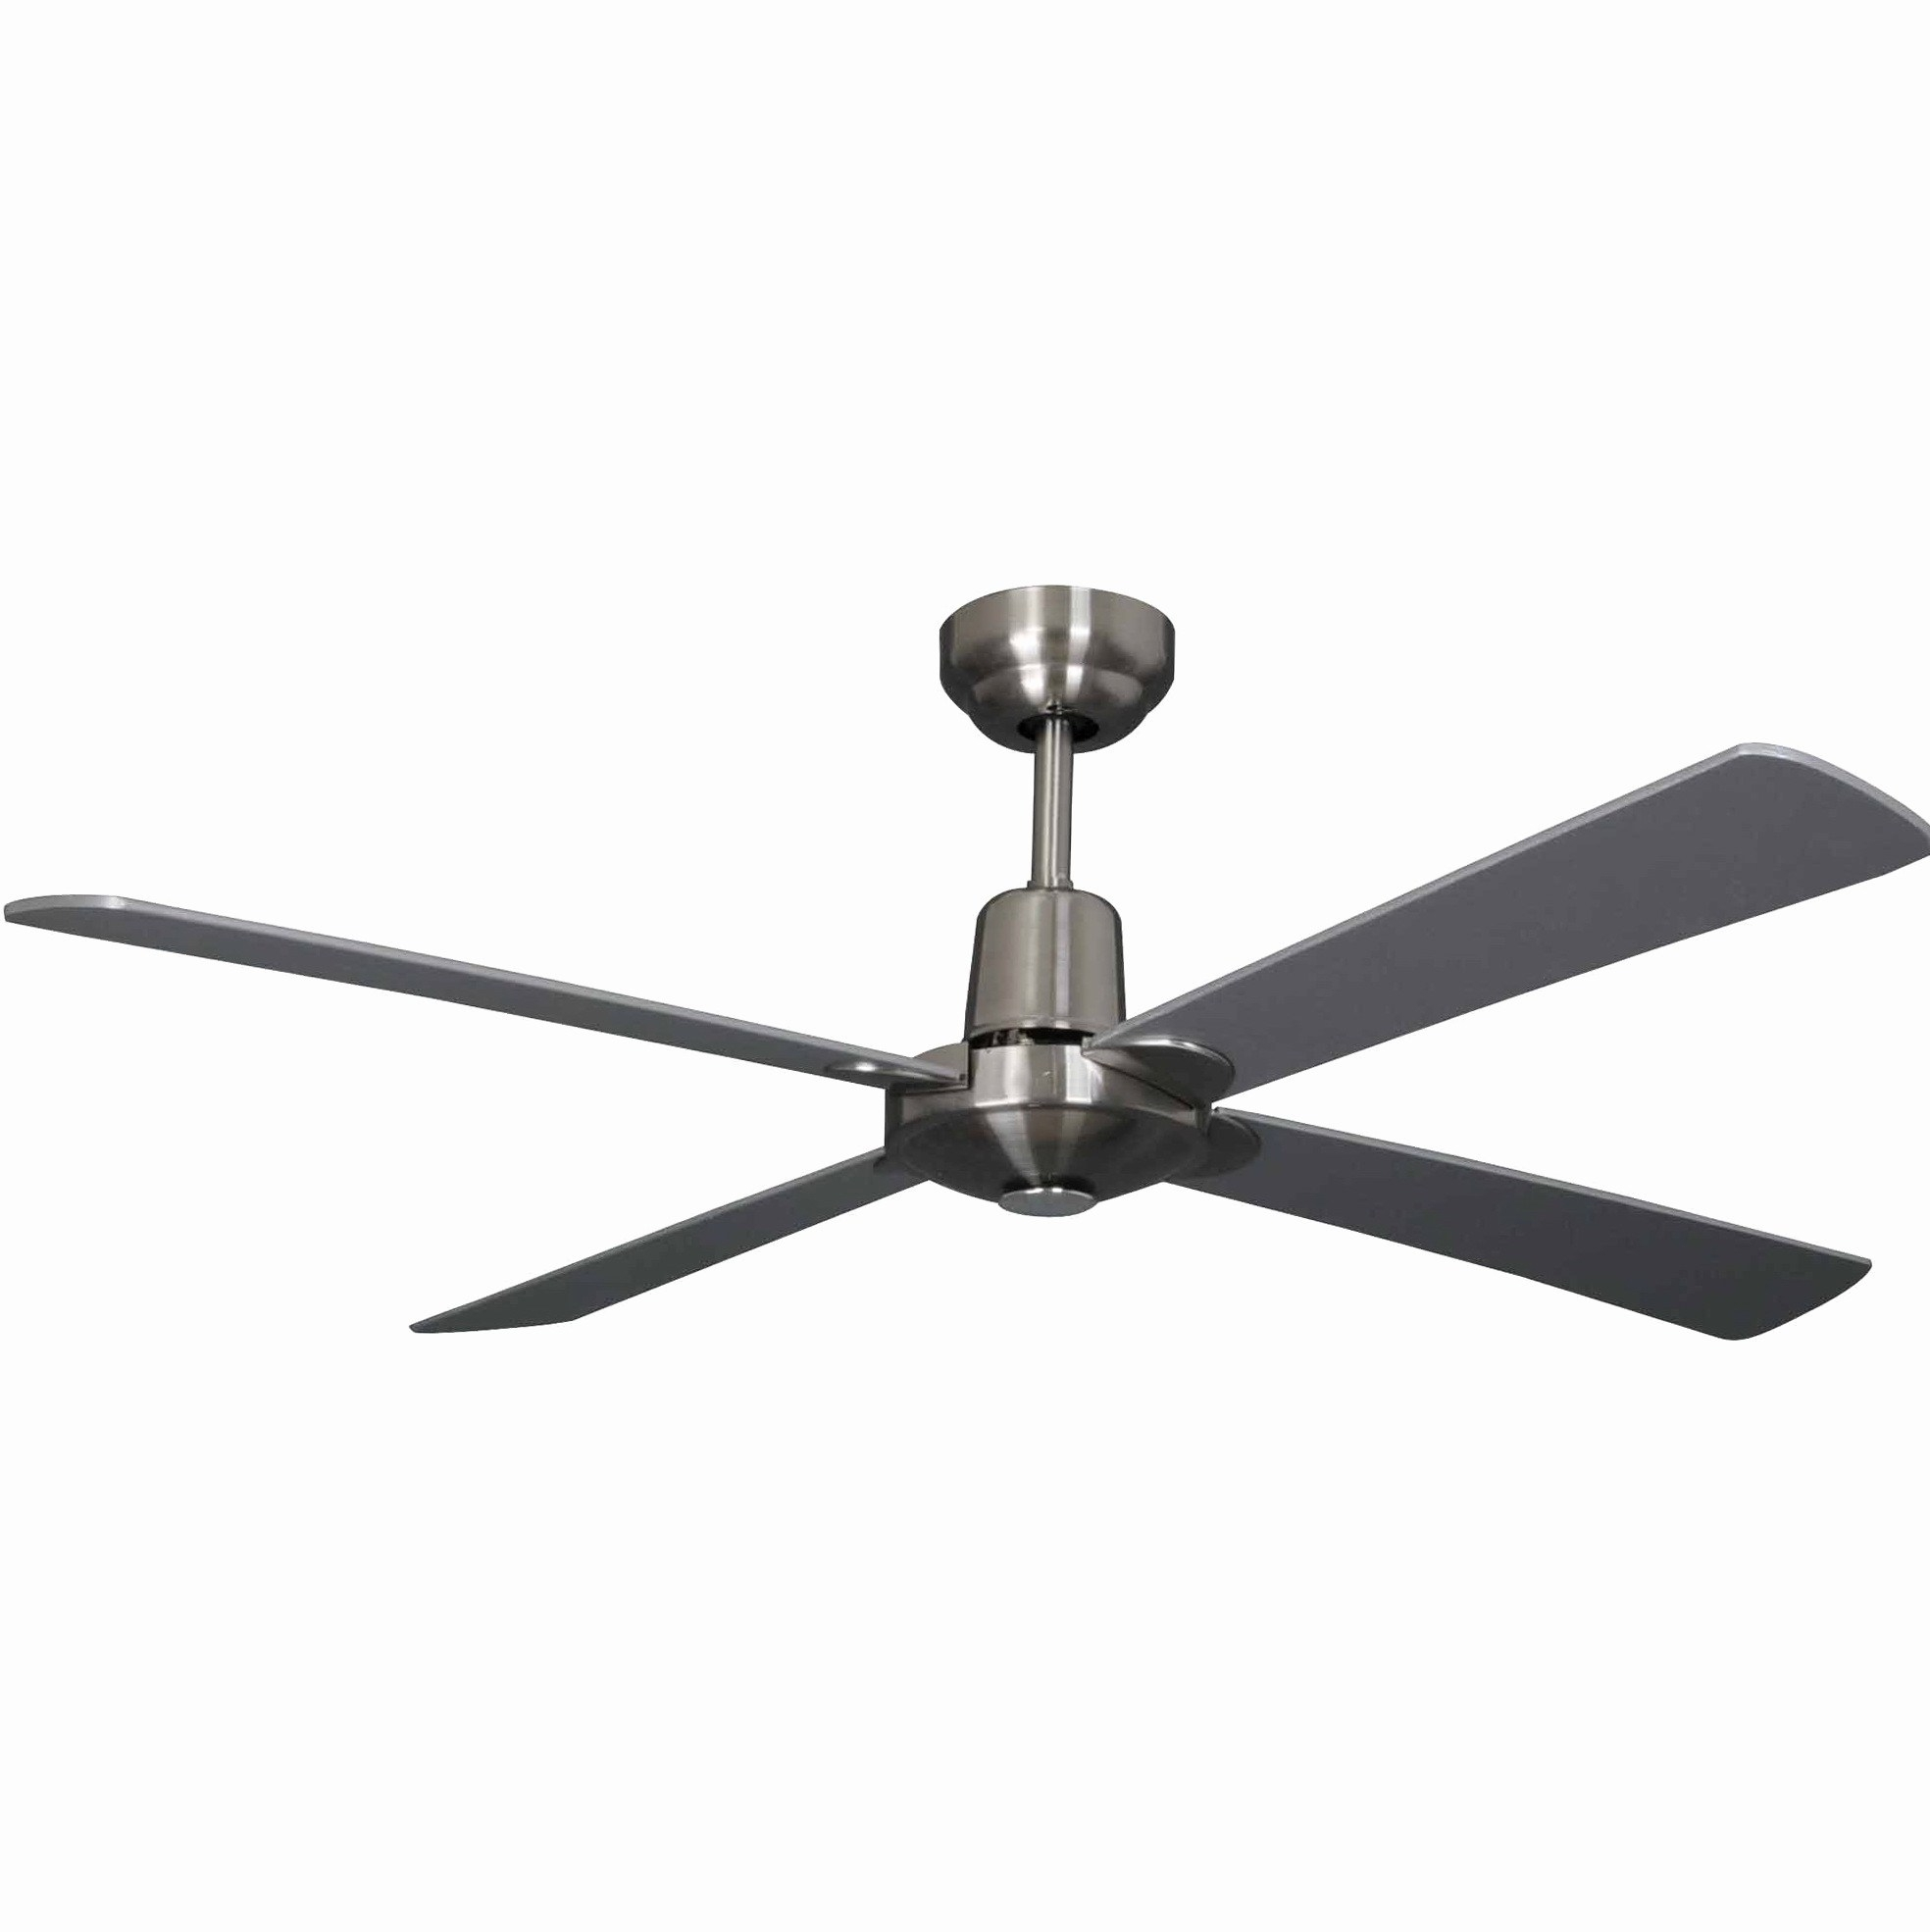 Newest Hunter Outdoor Ceiling Fans In Calmly Hunter Outdoor Original Regarding Outdoor Ceiling Fans At Menards (View 20 of 20)